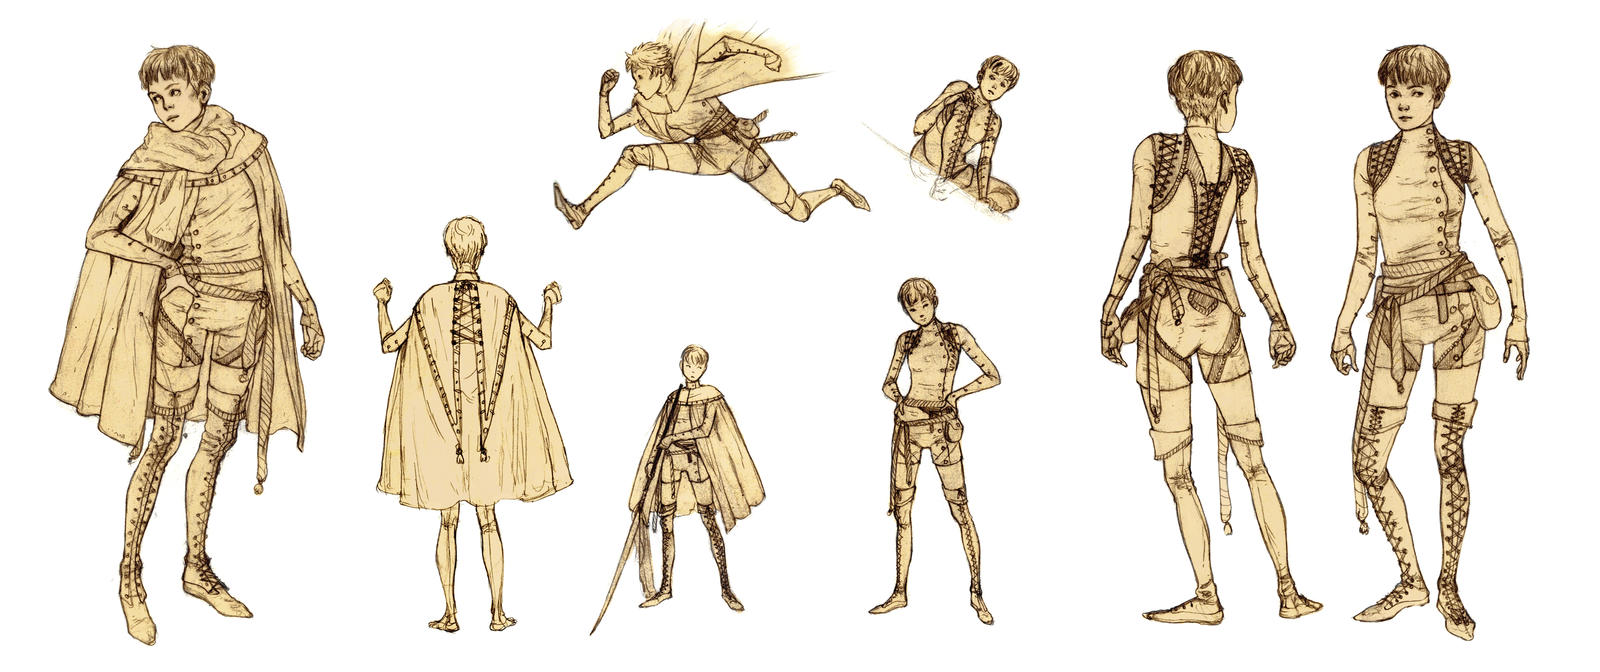 Game character concepts by JMichek